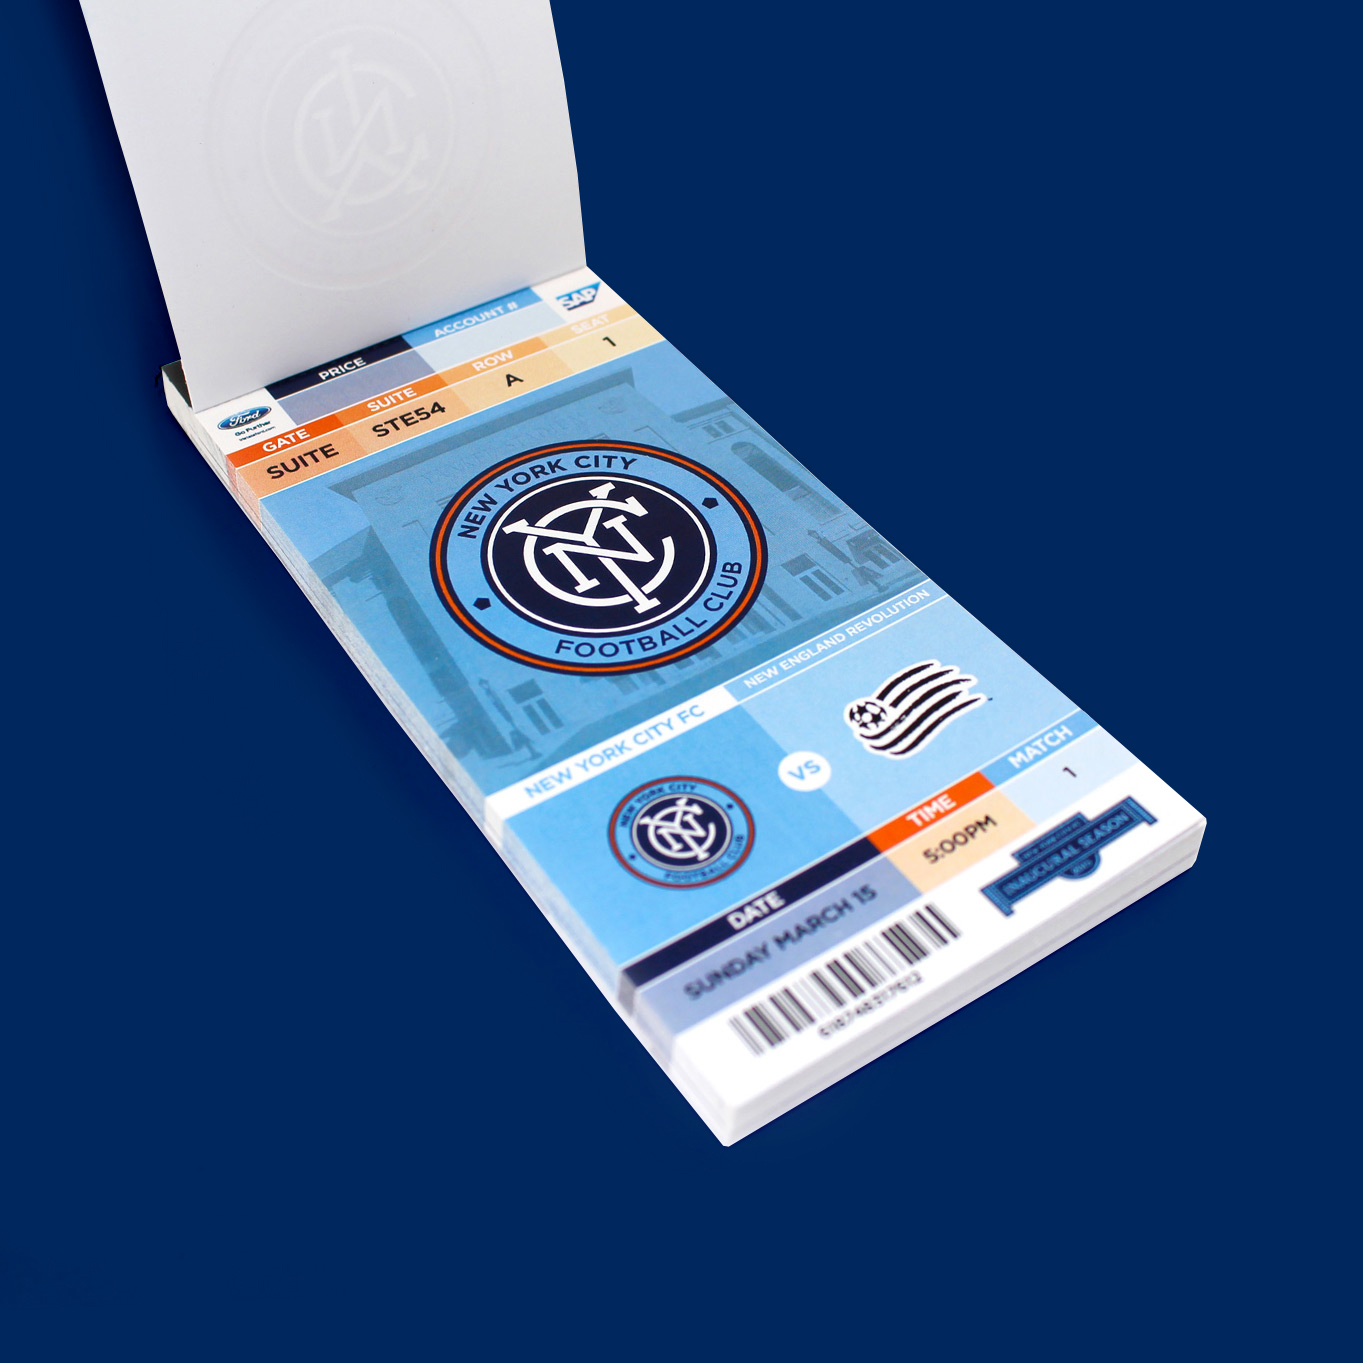 NYCFC, Yankee Stadium, Soccer, New York City FC Season Tickets 2015